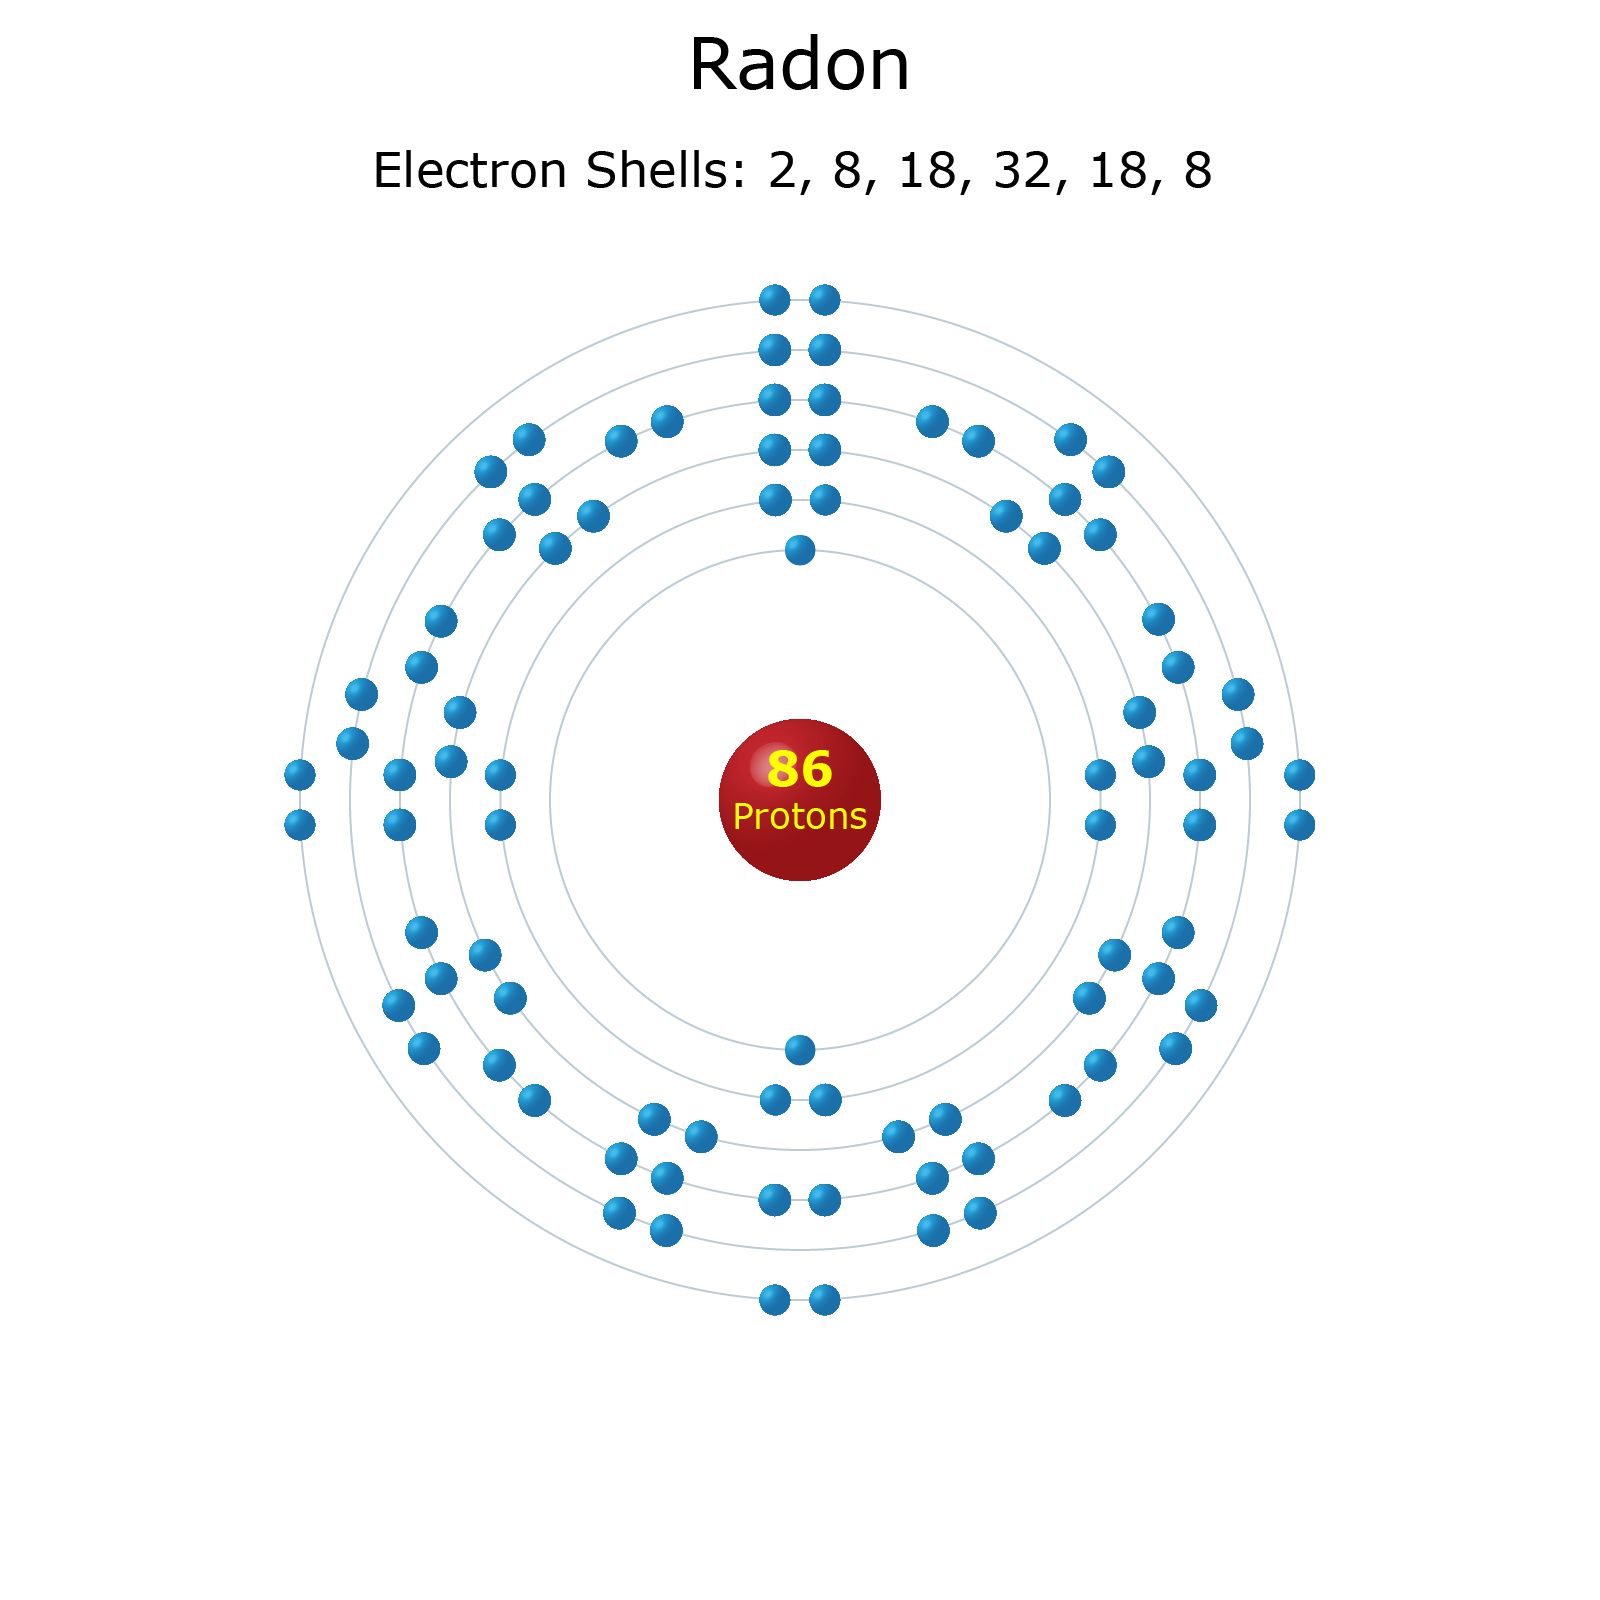 Atomic Structure Diagram Radon Trusted Wiring Diagrams Atoms Electron Configurations Of Elements Shell Custom U2022 An Advertisement For The Element